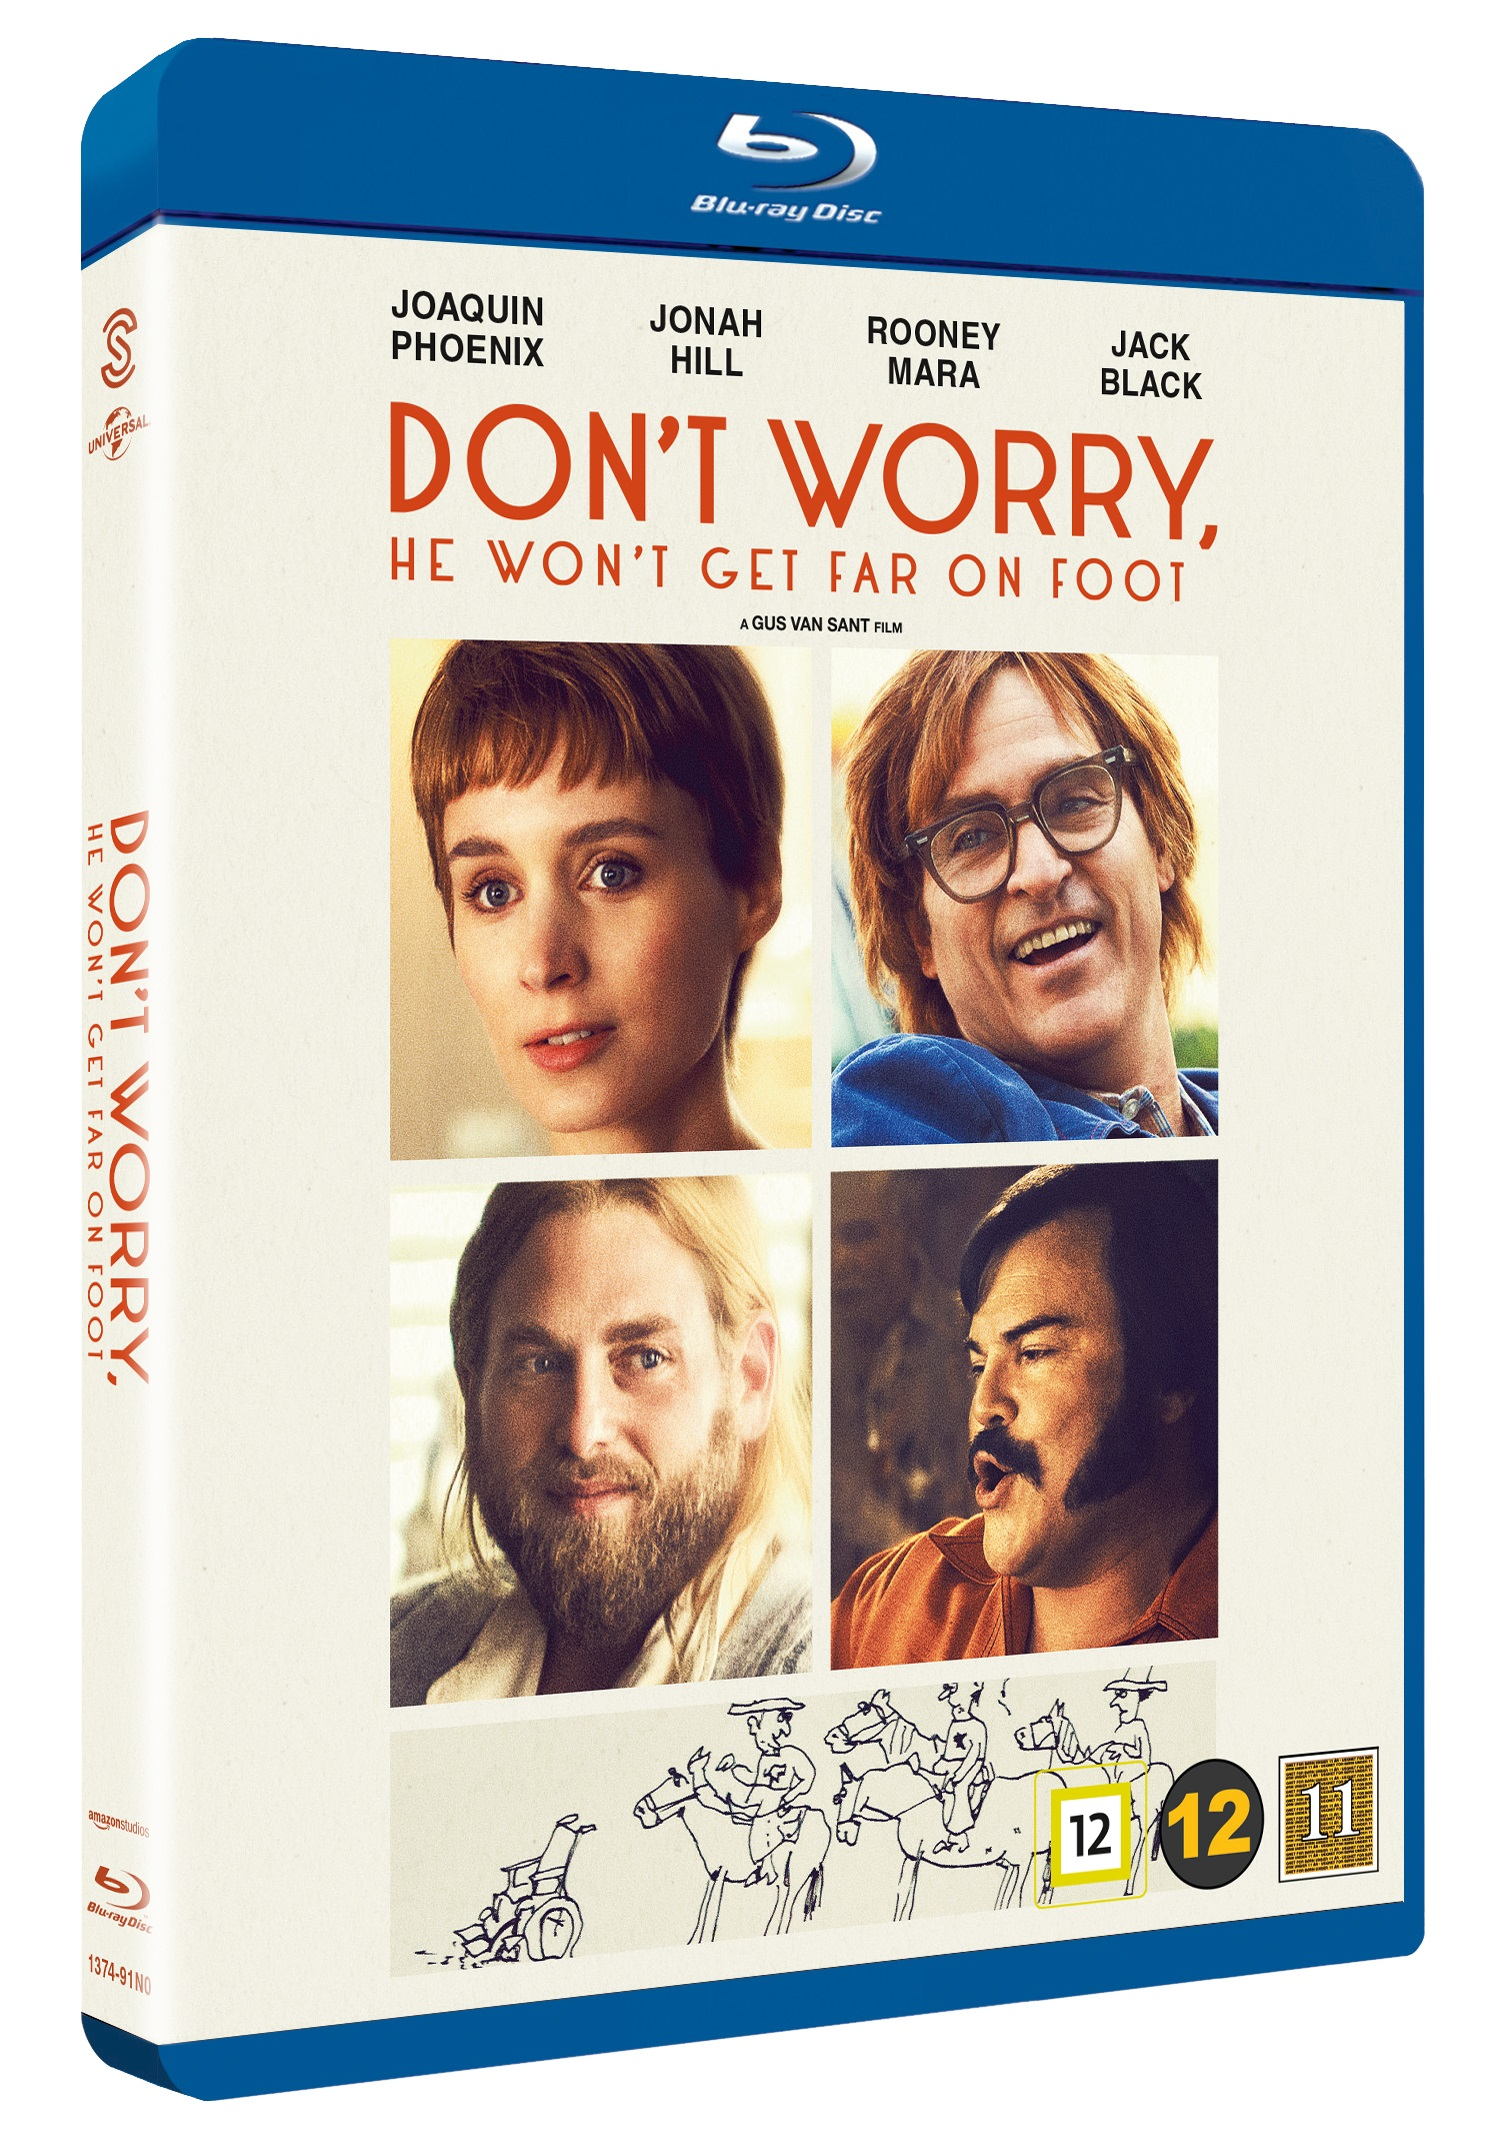 Don't Worry, He Won't Get Far on Foot -  - Film -  - 5706169001555 - December 20, 2018